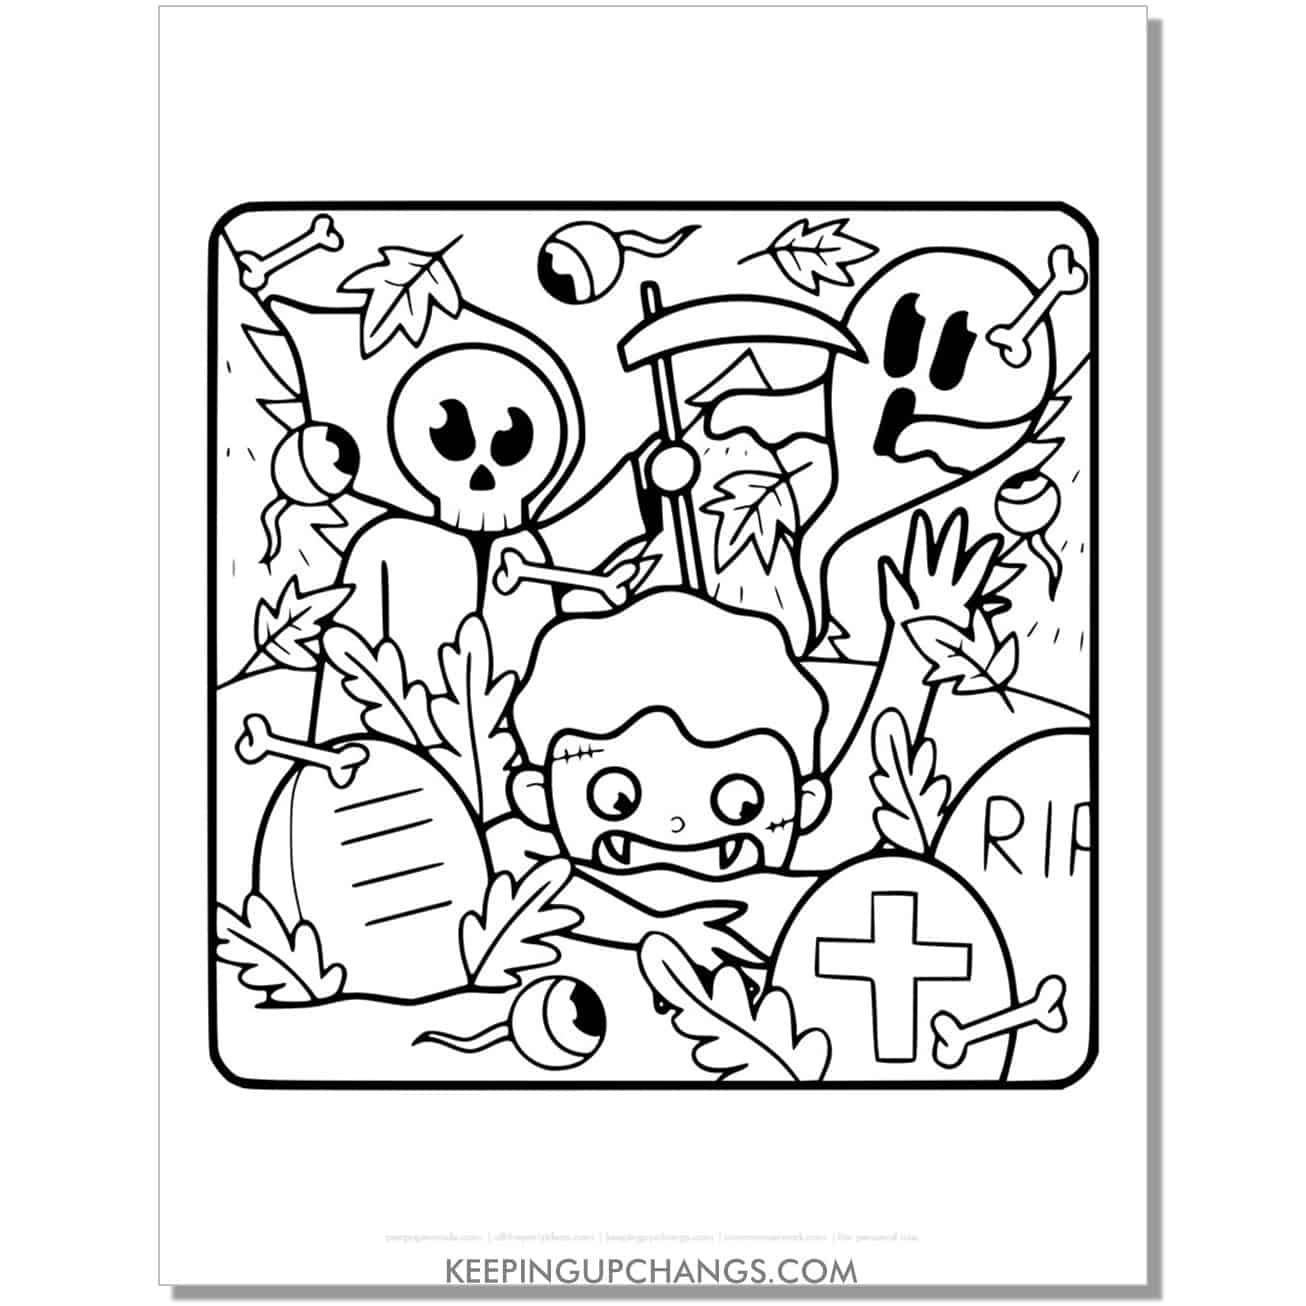 free zombie, ghost, grim reaper coloring page.